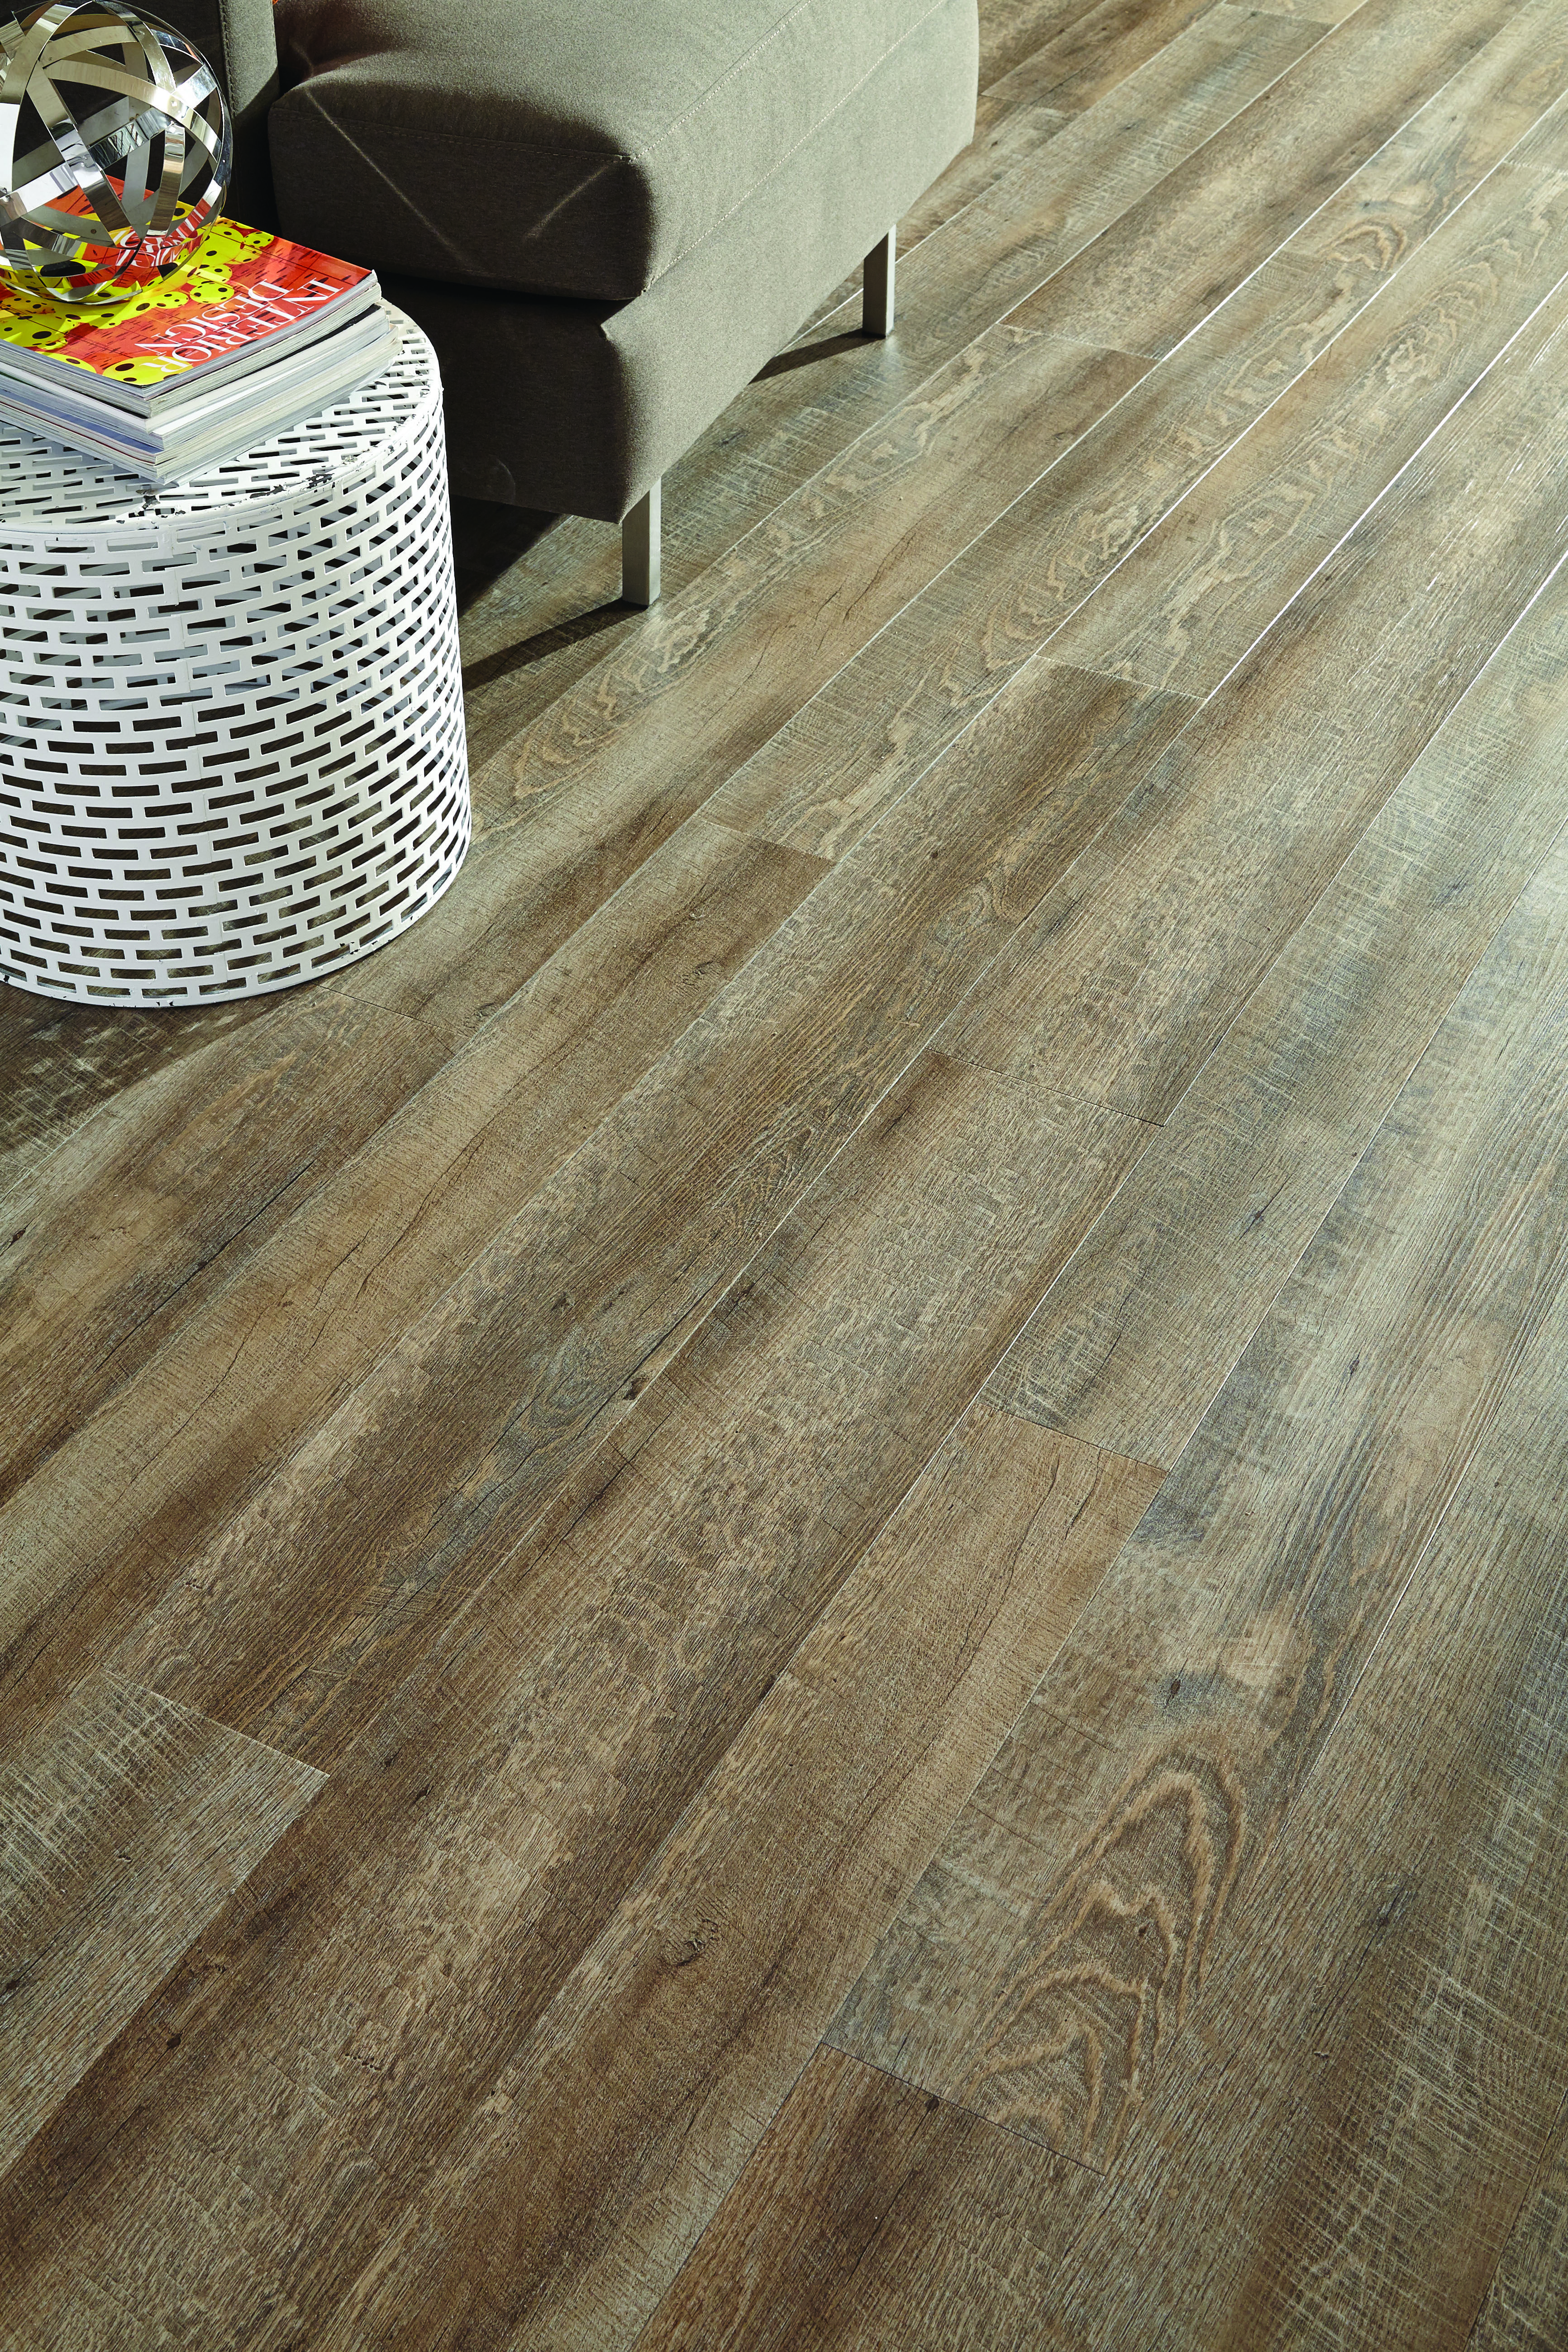 at hardwood self floors amazing lowes tile floor gallery carpet vinyl plank in lay how adhesive file prices pa planks install linoleum to laminate loose unnamed flooring